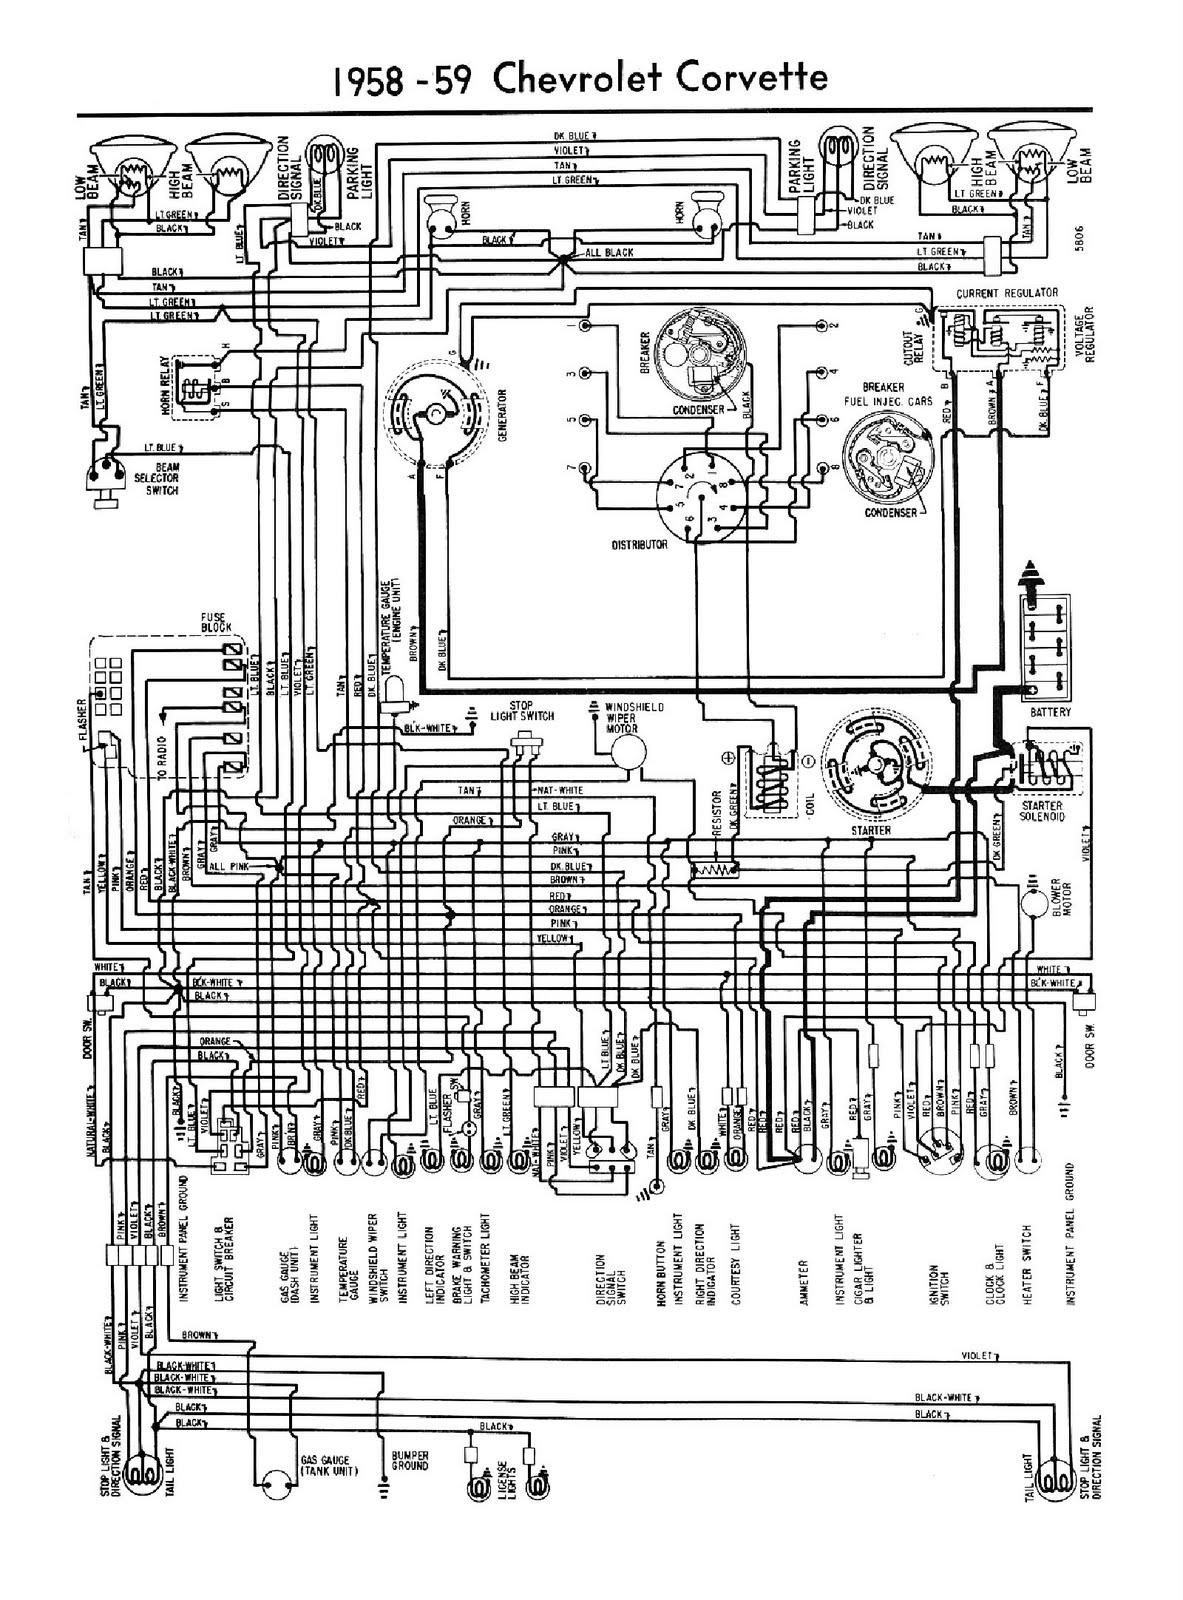 56 Plymouth Wiring Diagram Auto Electrical Schematics Free 1958